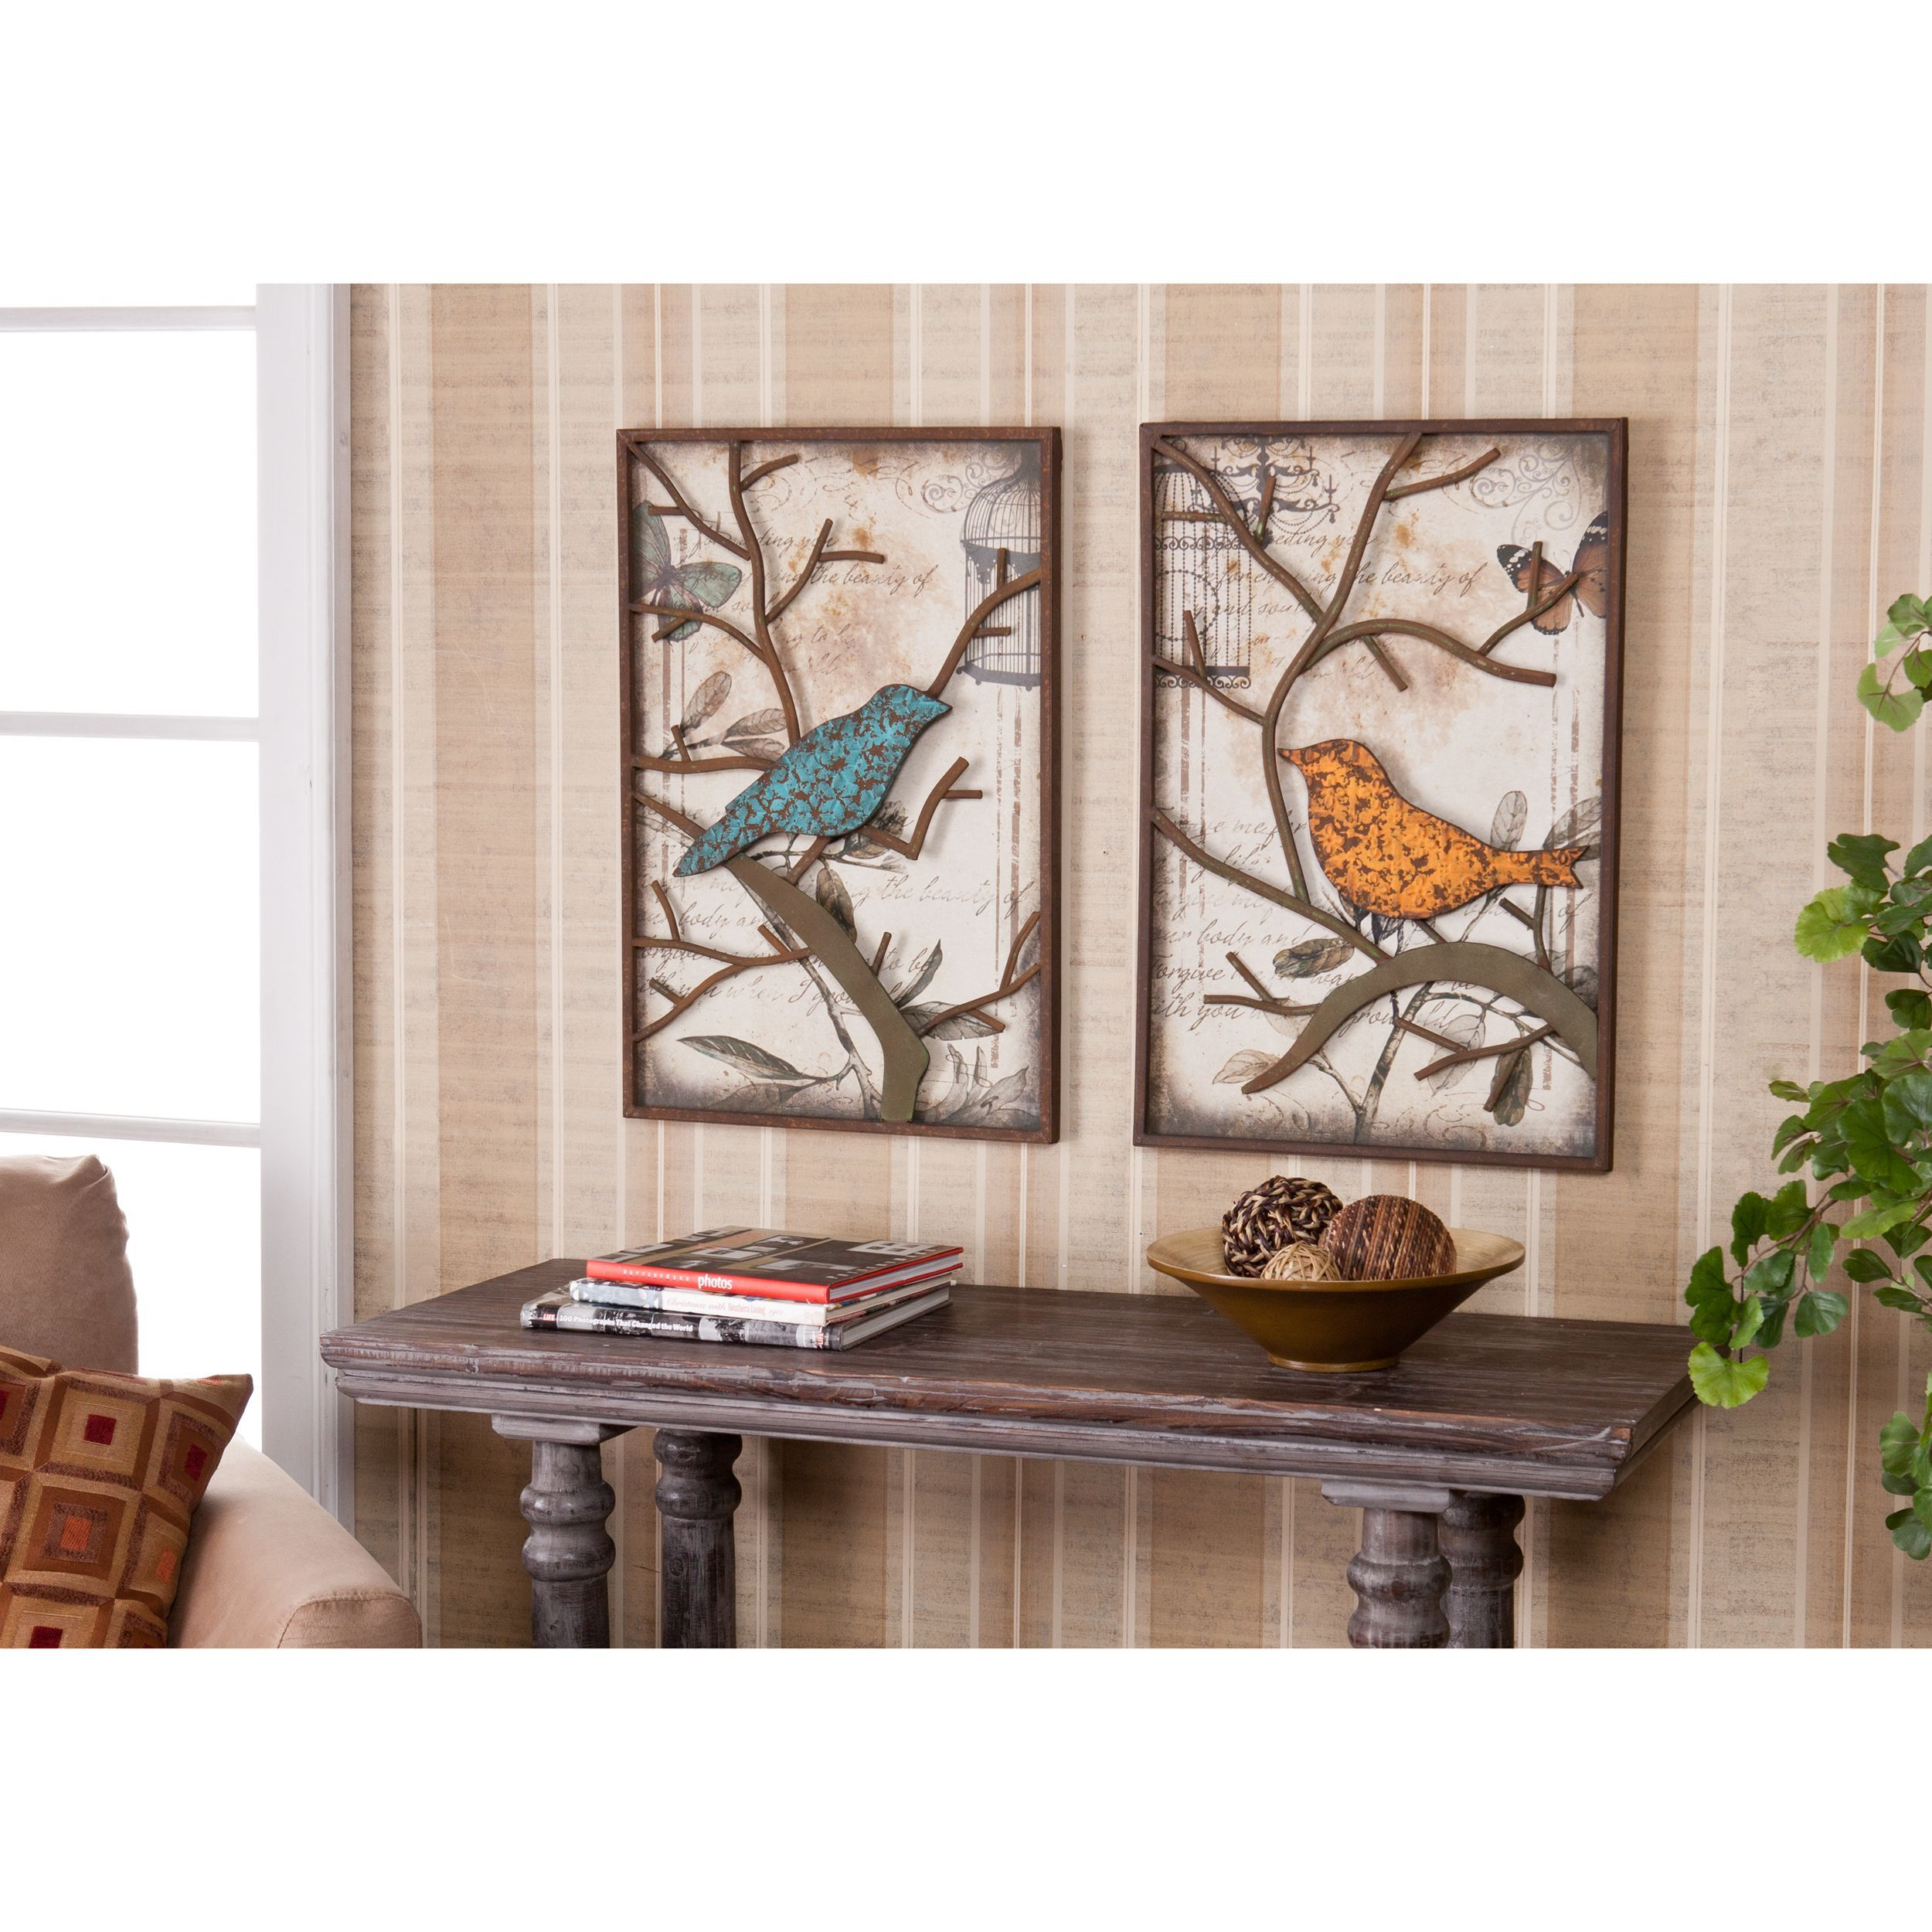 These Vintage Style Wall Art Panels Are Ideal For Adding A Nature